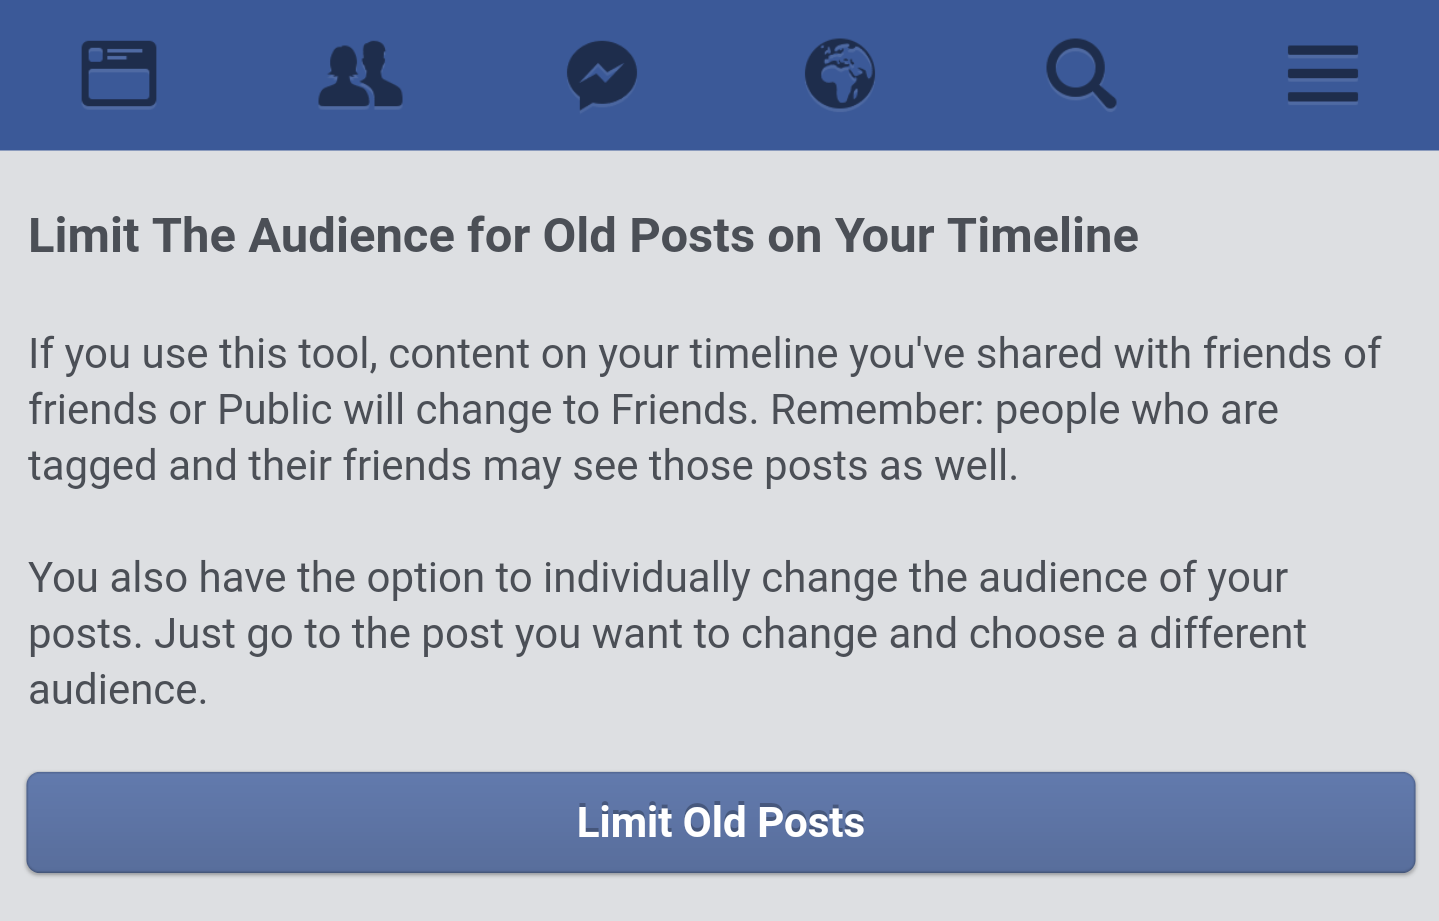 Limit old posts